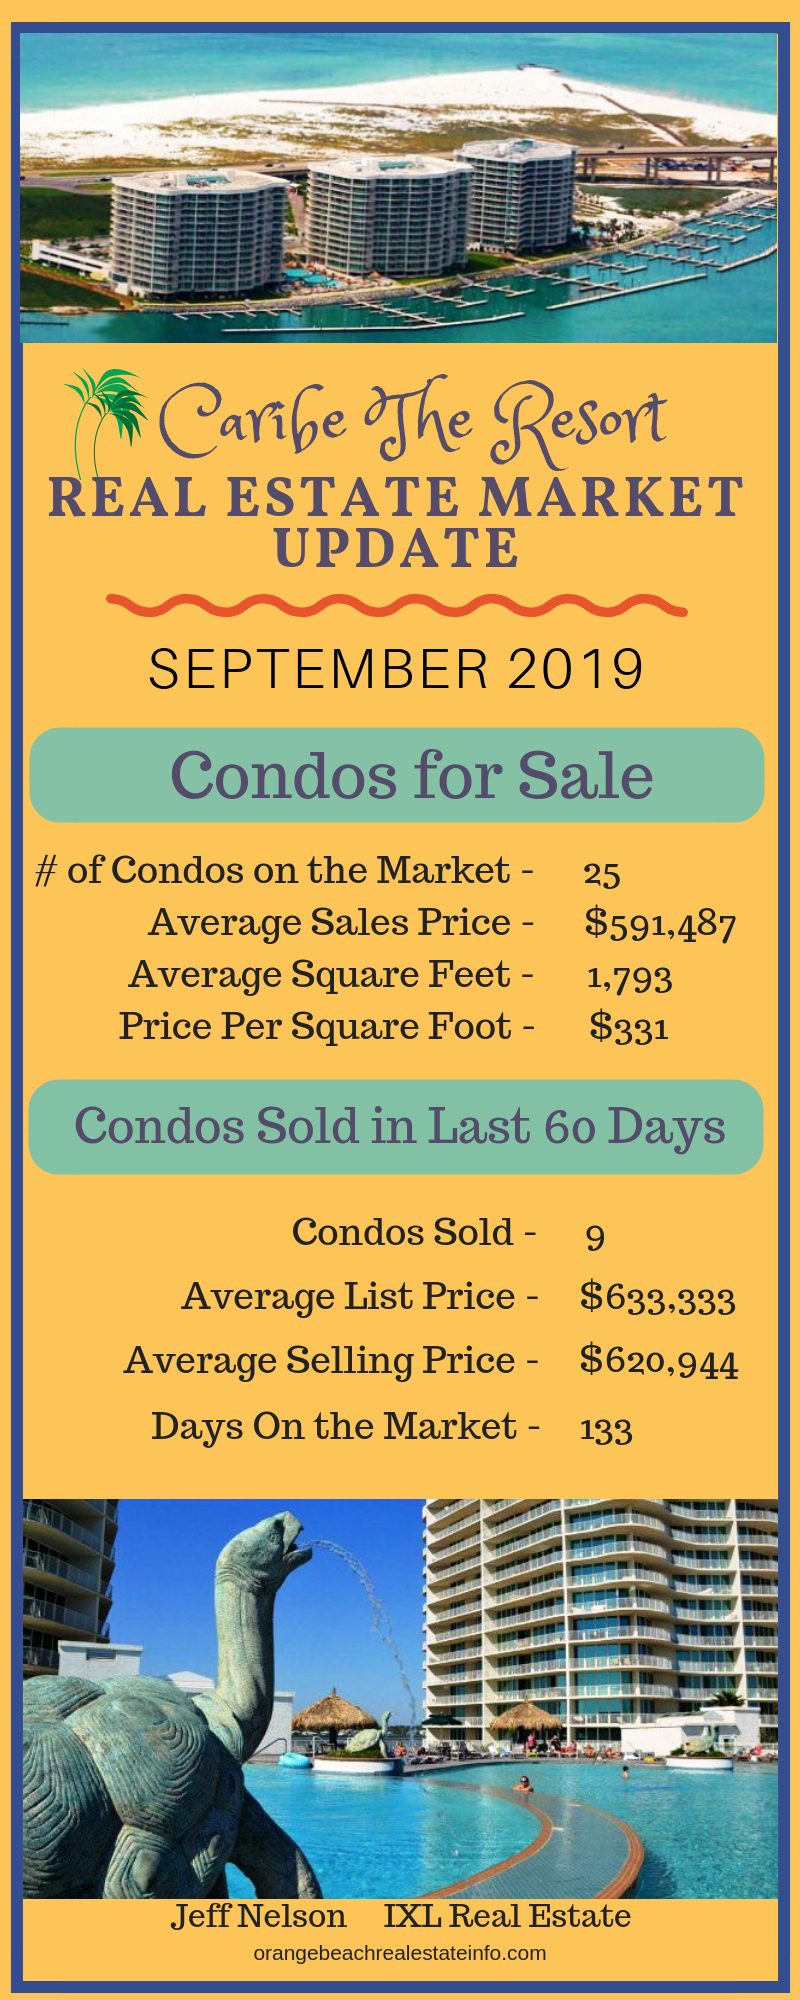 Caribe Real Estate Market Report - September 2019